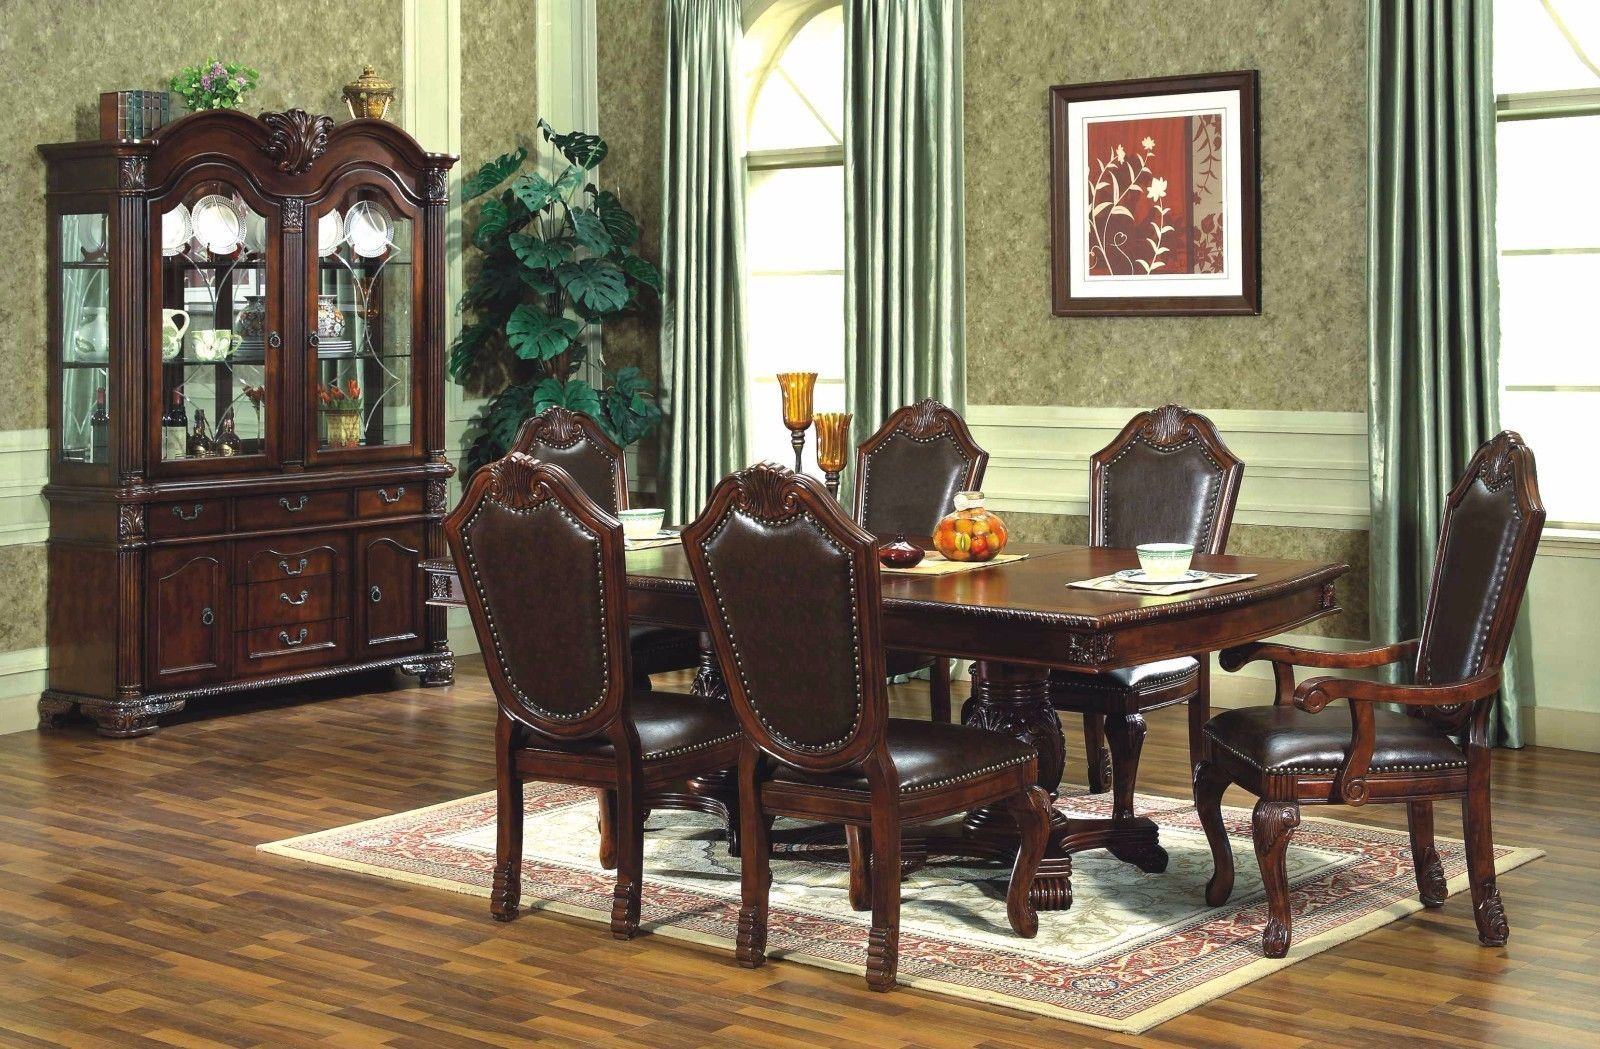 Mcferran RD5004 Dining Room Set 7pc. Cherry Furnishings Traditional Style